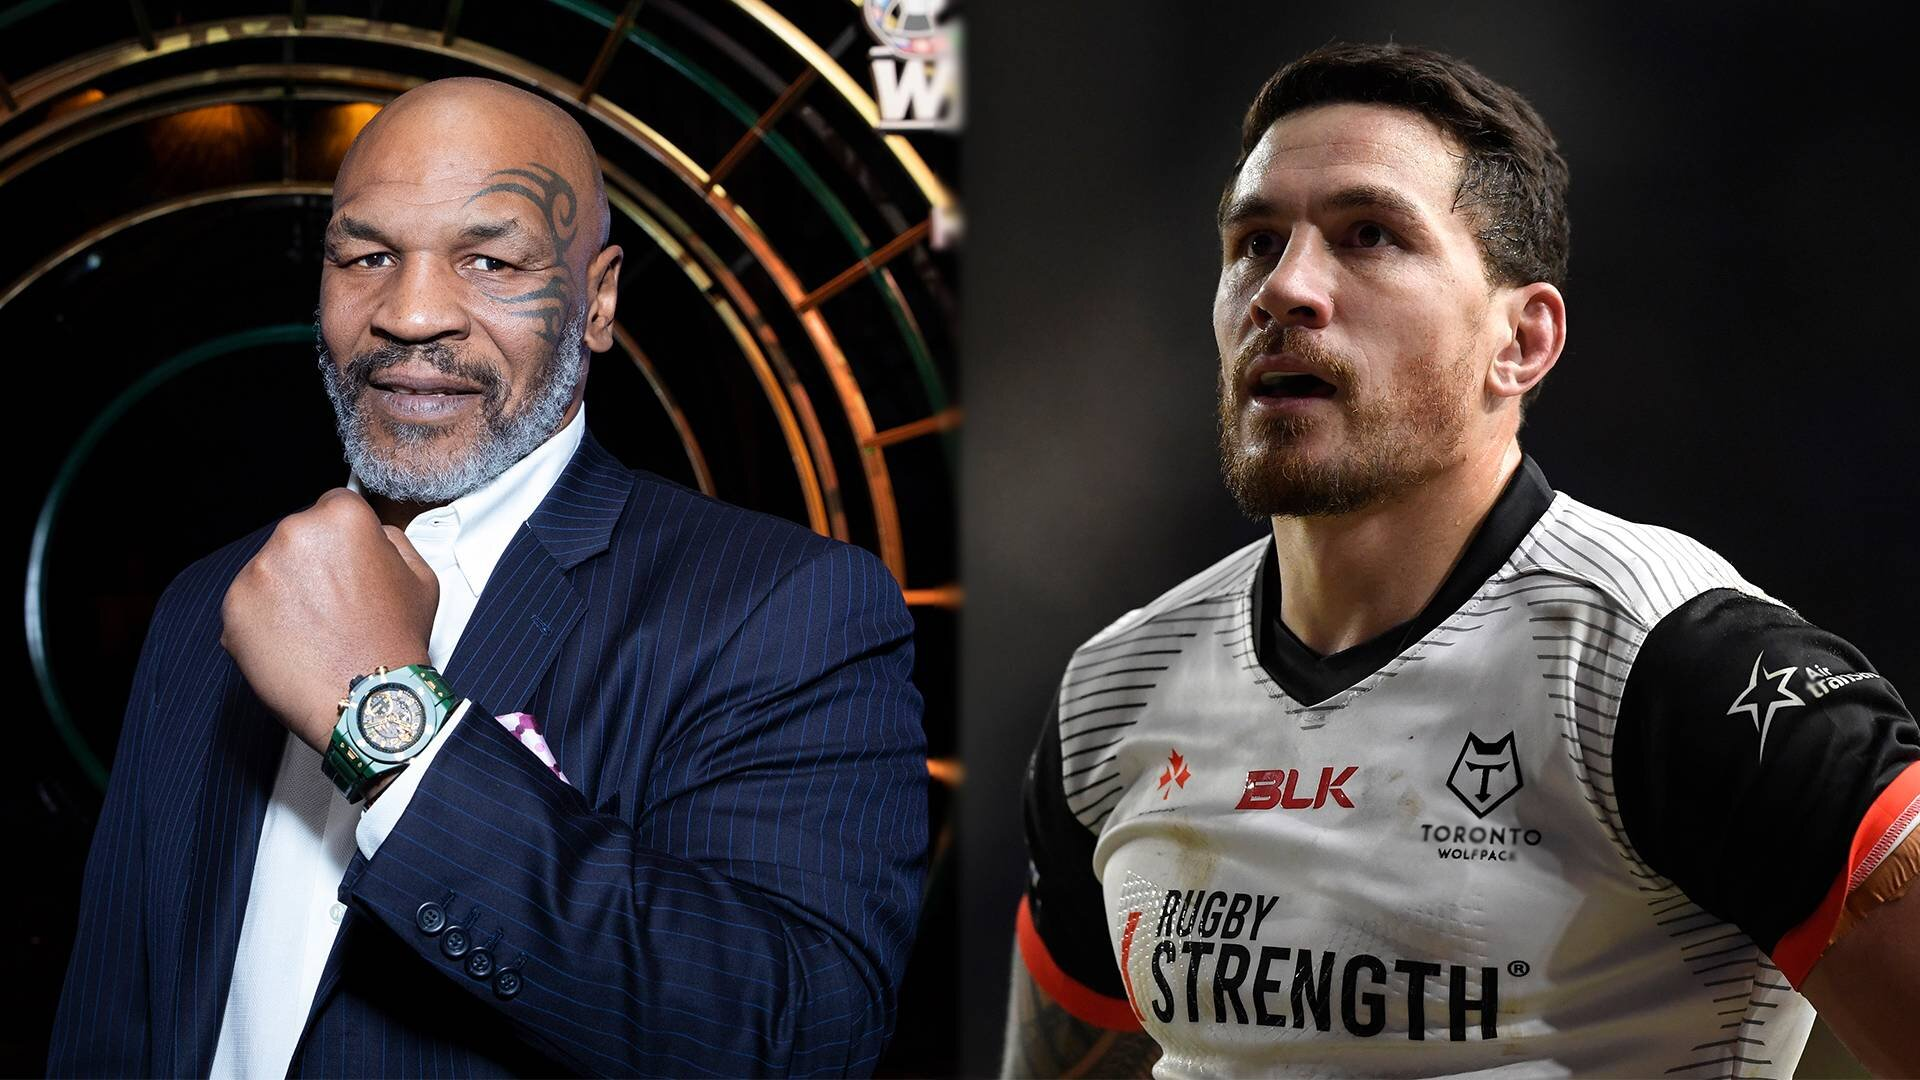 'Totally false': Mike Tyson speaks out about Sonny Bill Williams charity fight reports